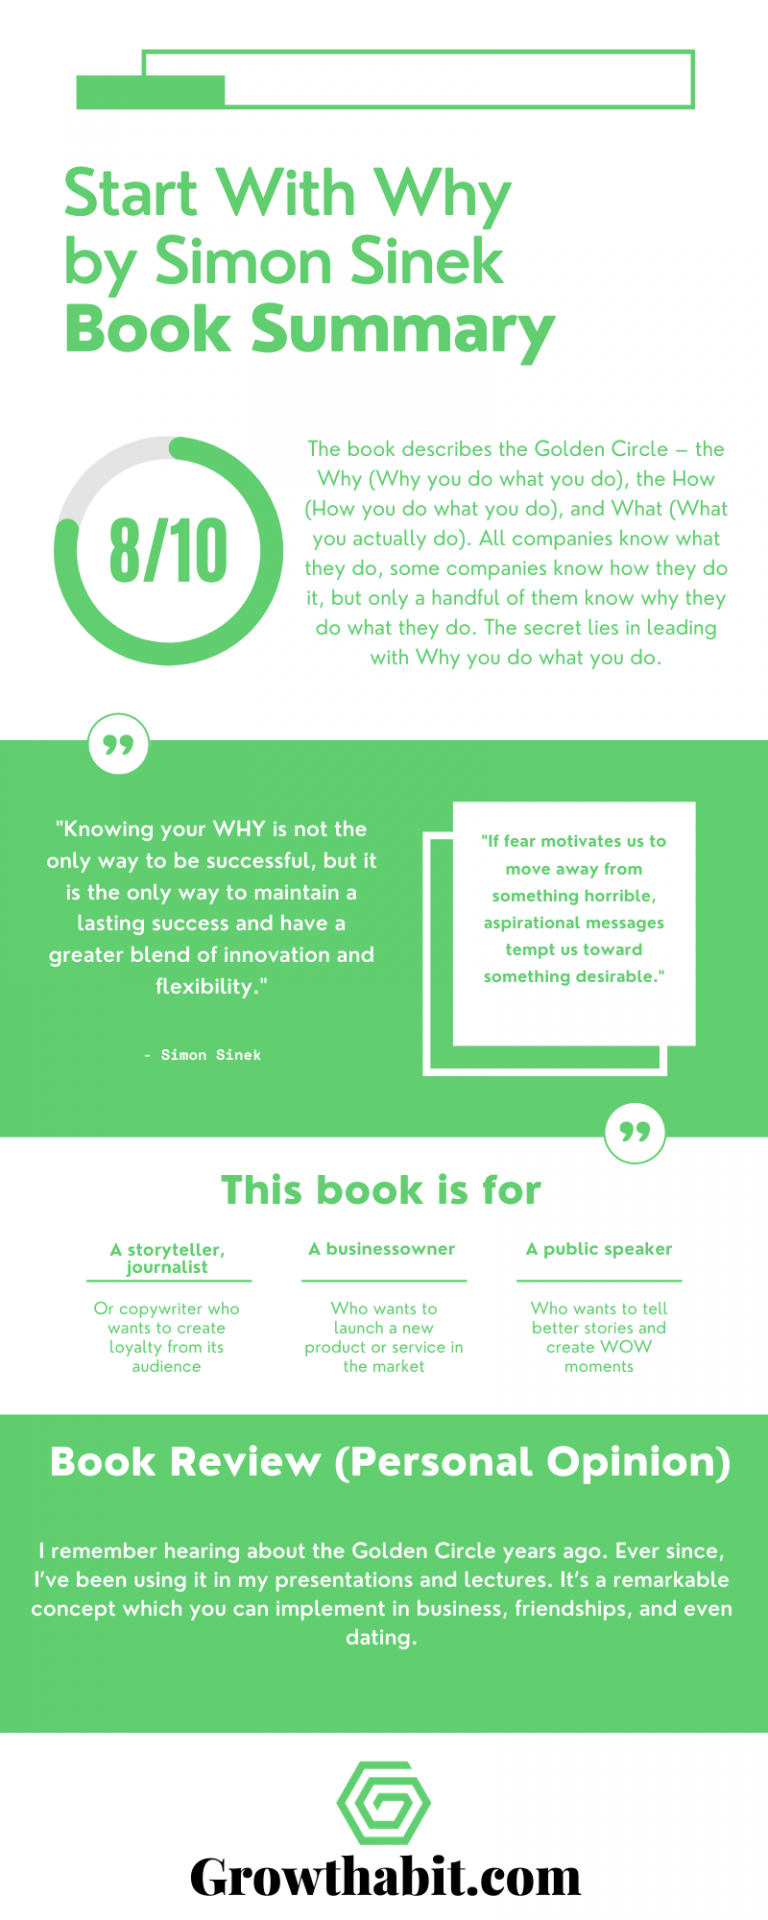 Start With Why by Simon Sinek - Book Summary Infographic